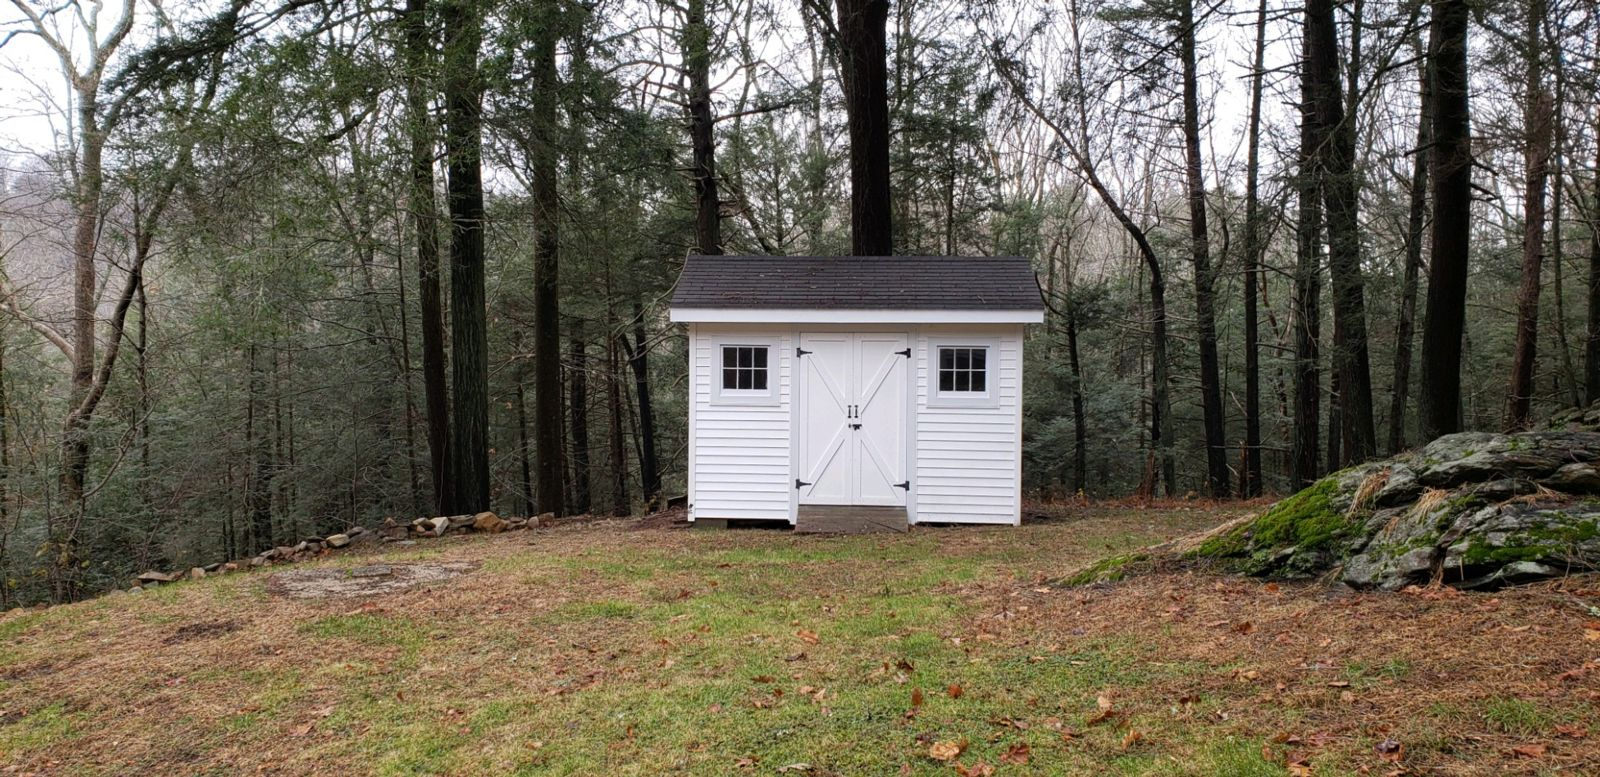 White shed in woods